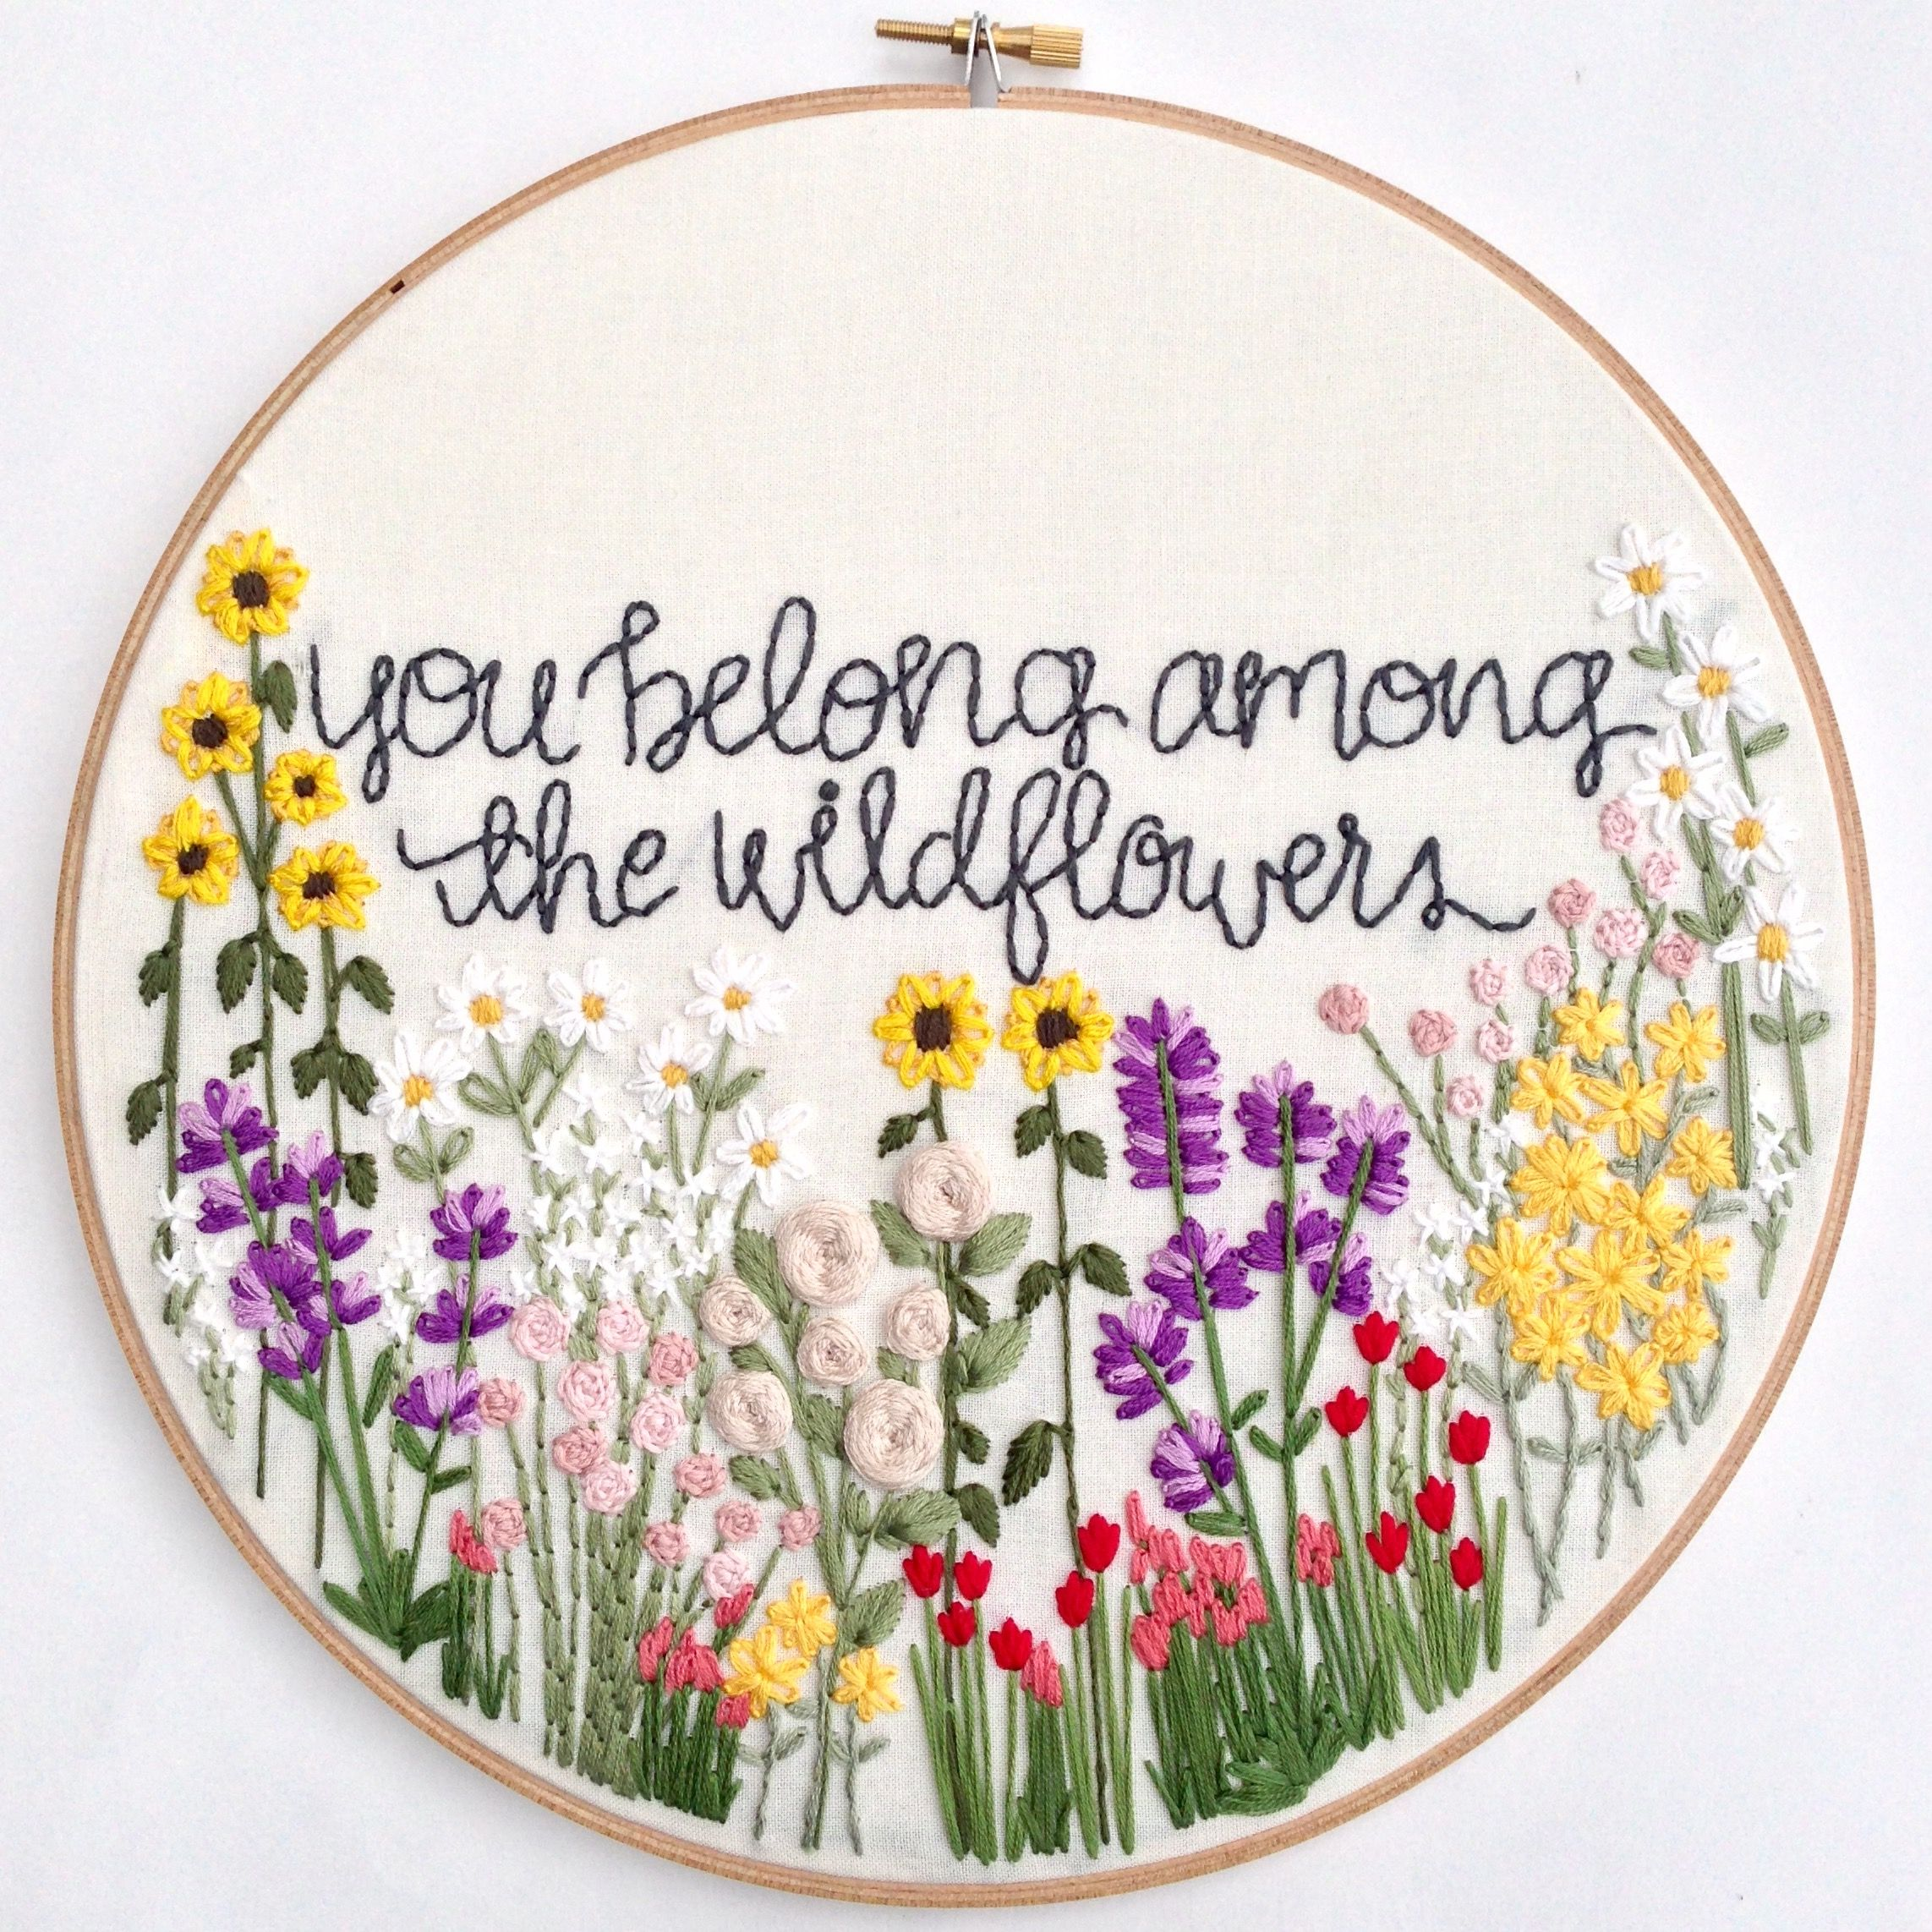 Flower Embroidery Patterns Cool Design Inspiration